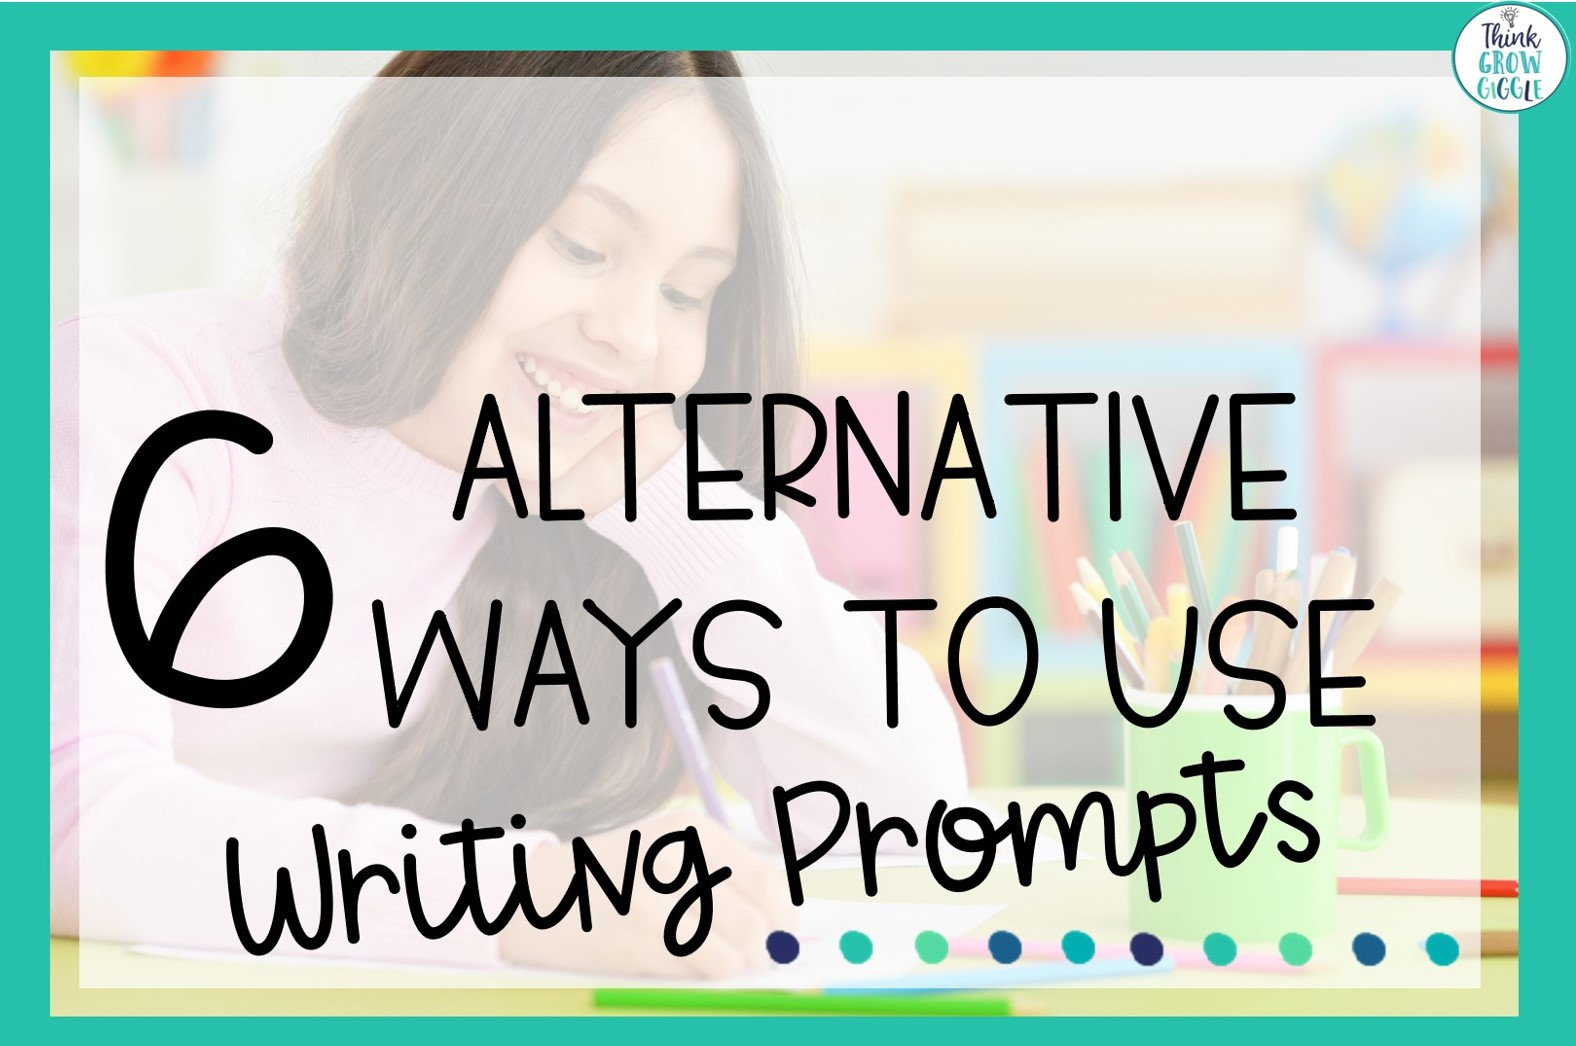 writing prompt activities